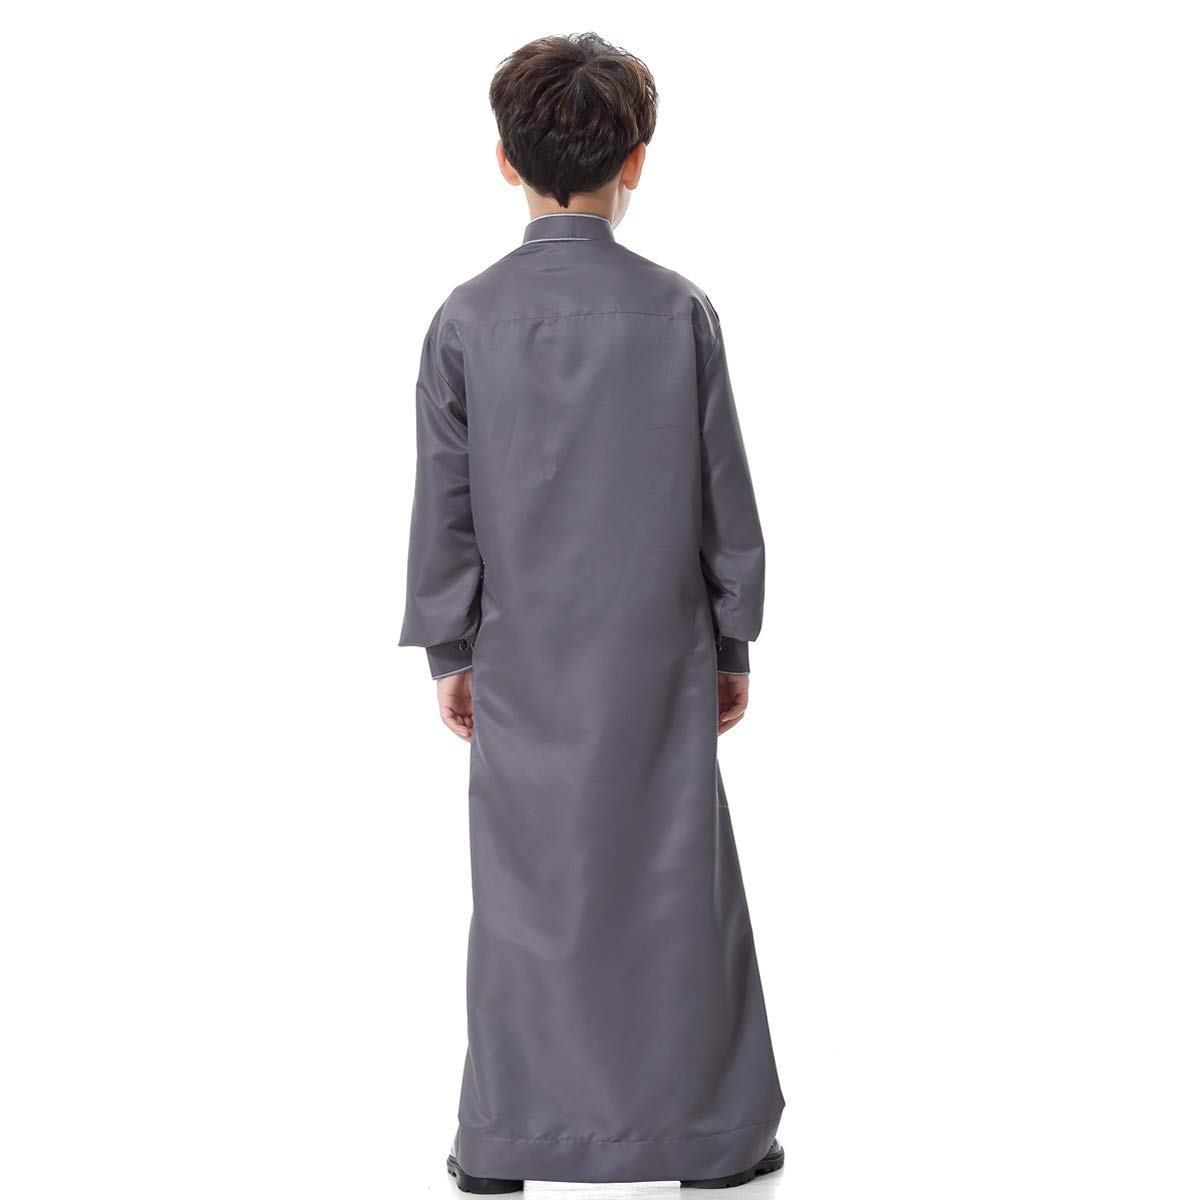 BaronHong Boys Muslim Embroidery Thobe Long Sleeves Stand Collar Button-Down